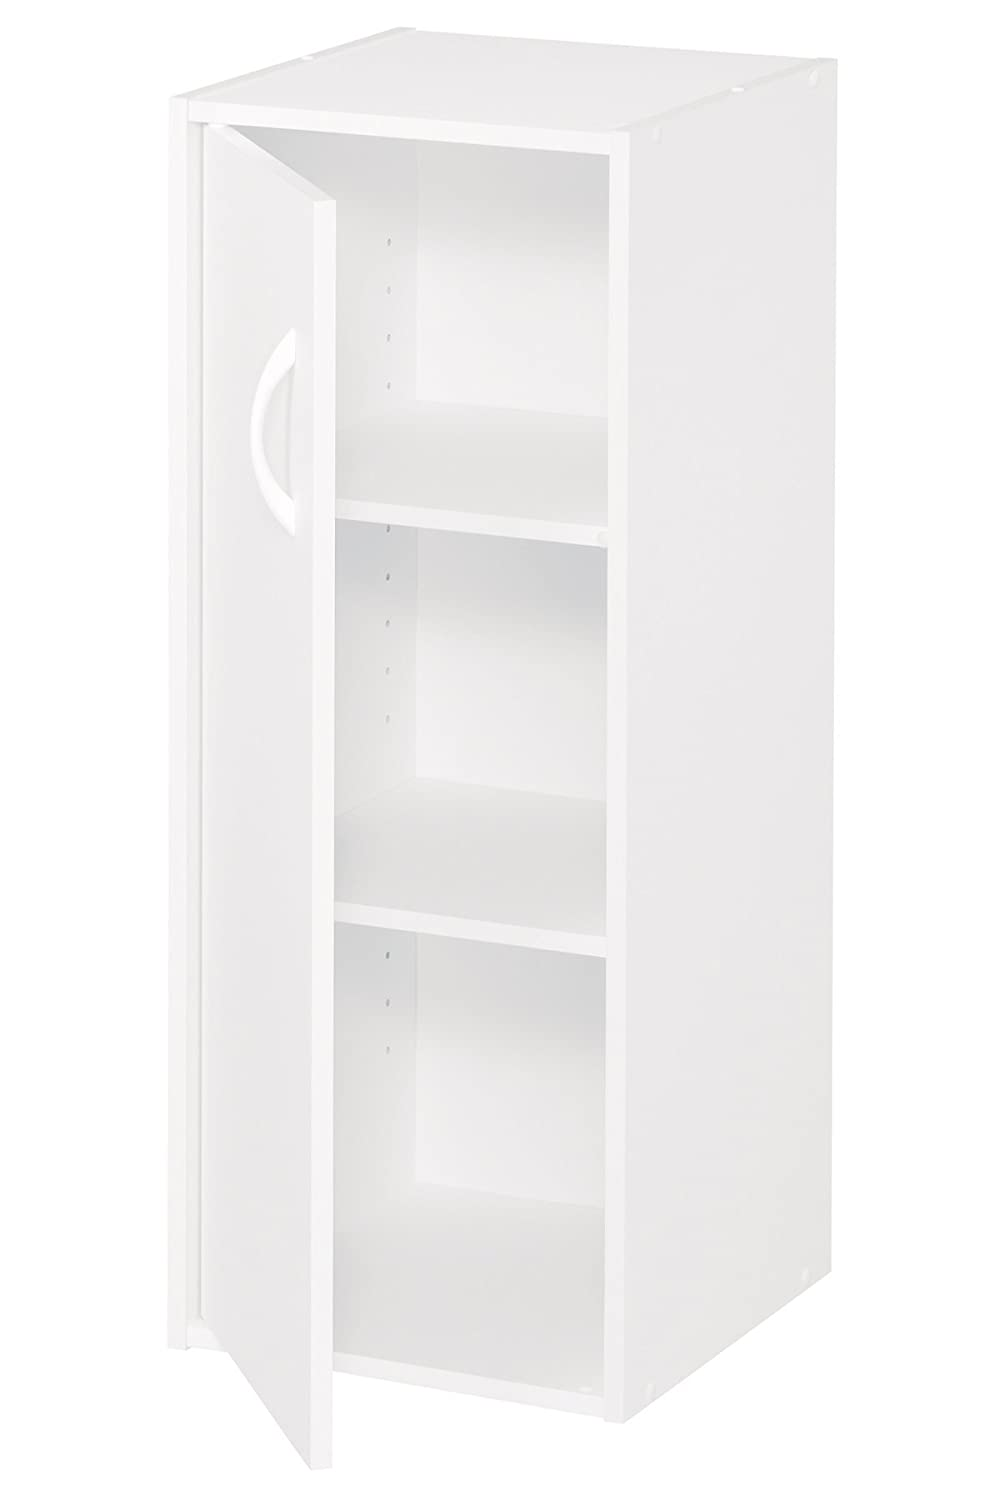 ClosetMaid 8988 Stackable 1-Door Organizer, White